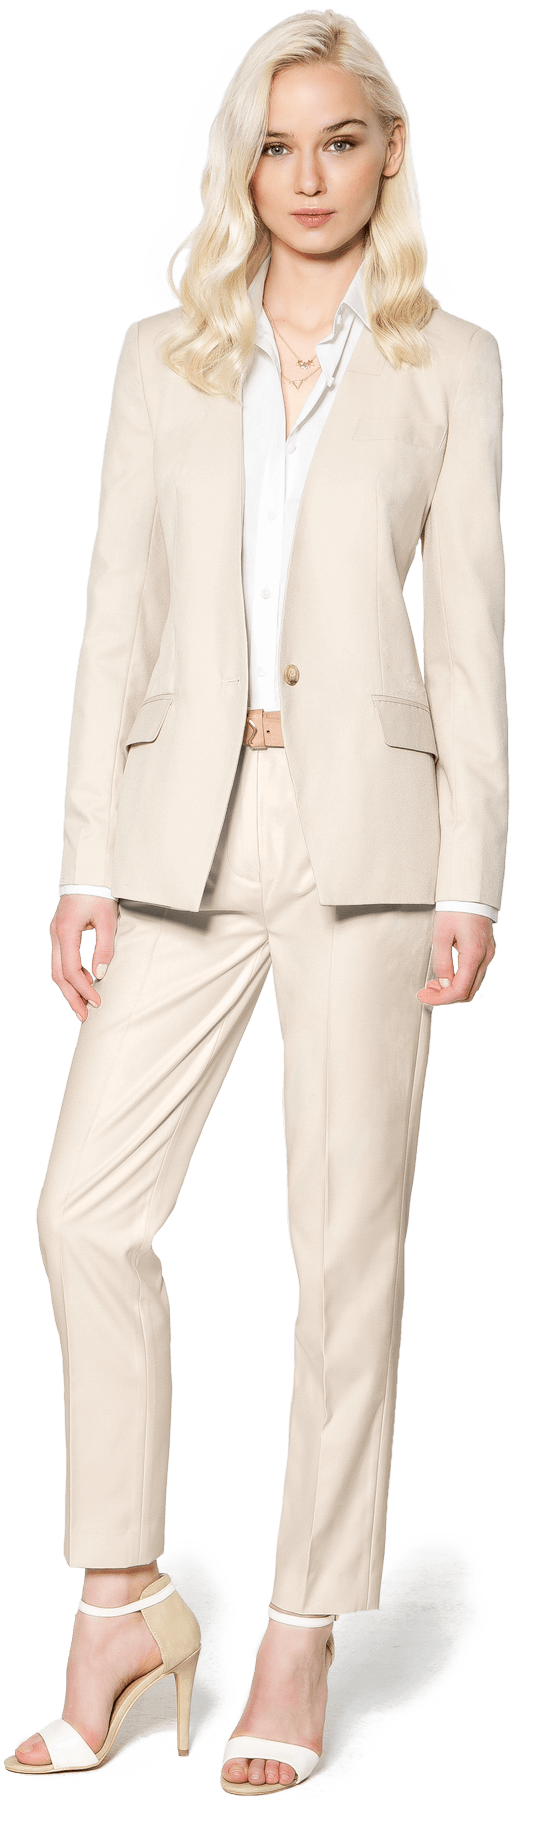 beige pant suit for women